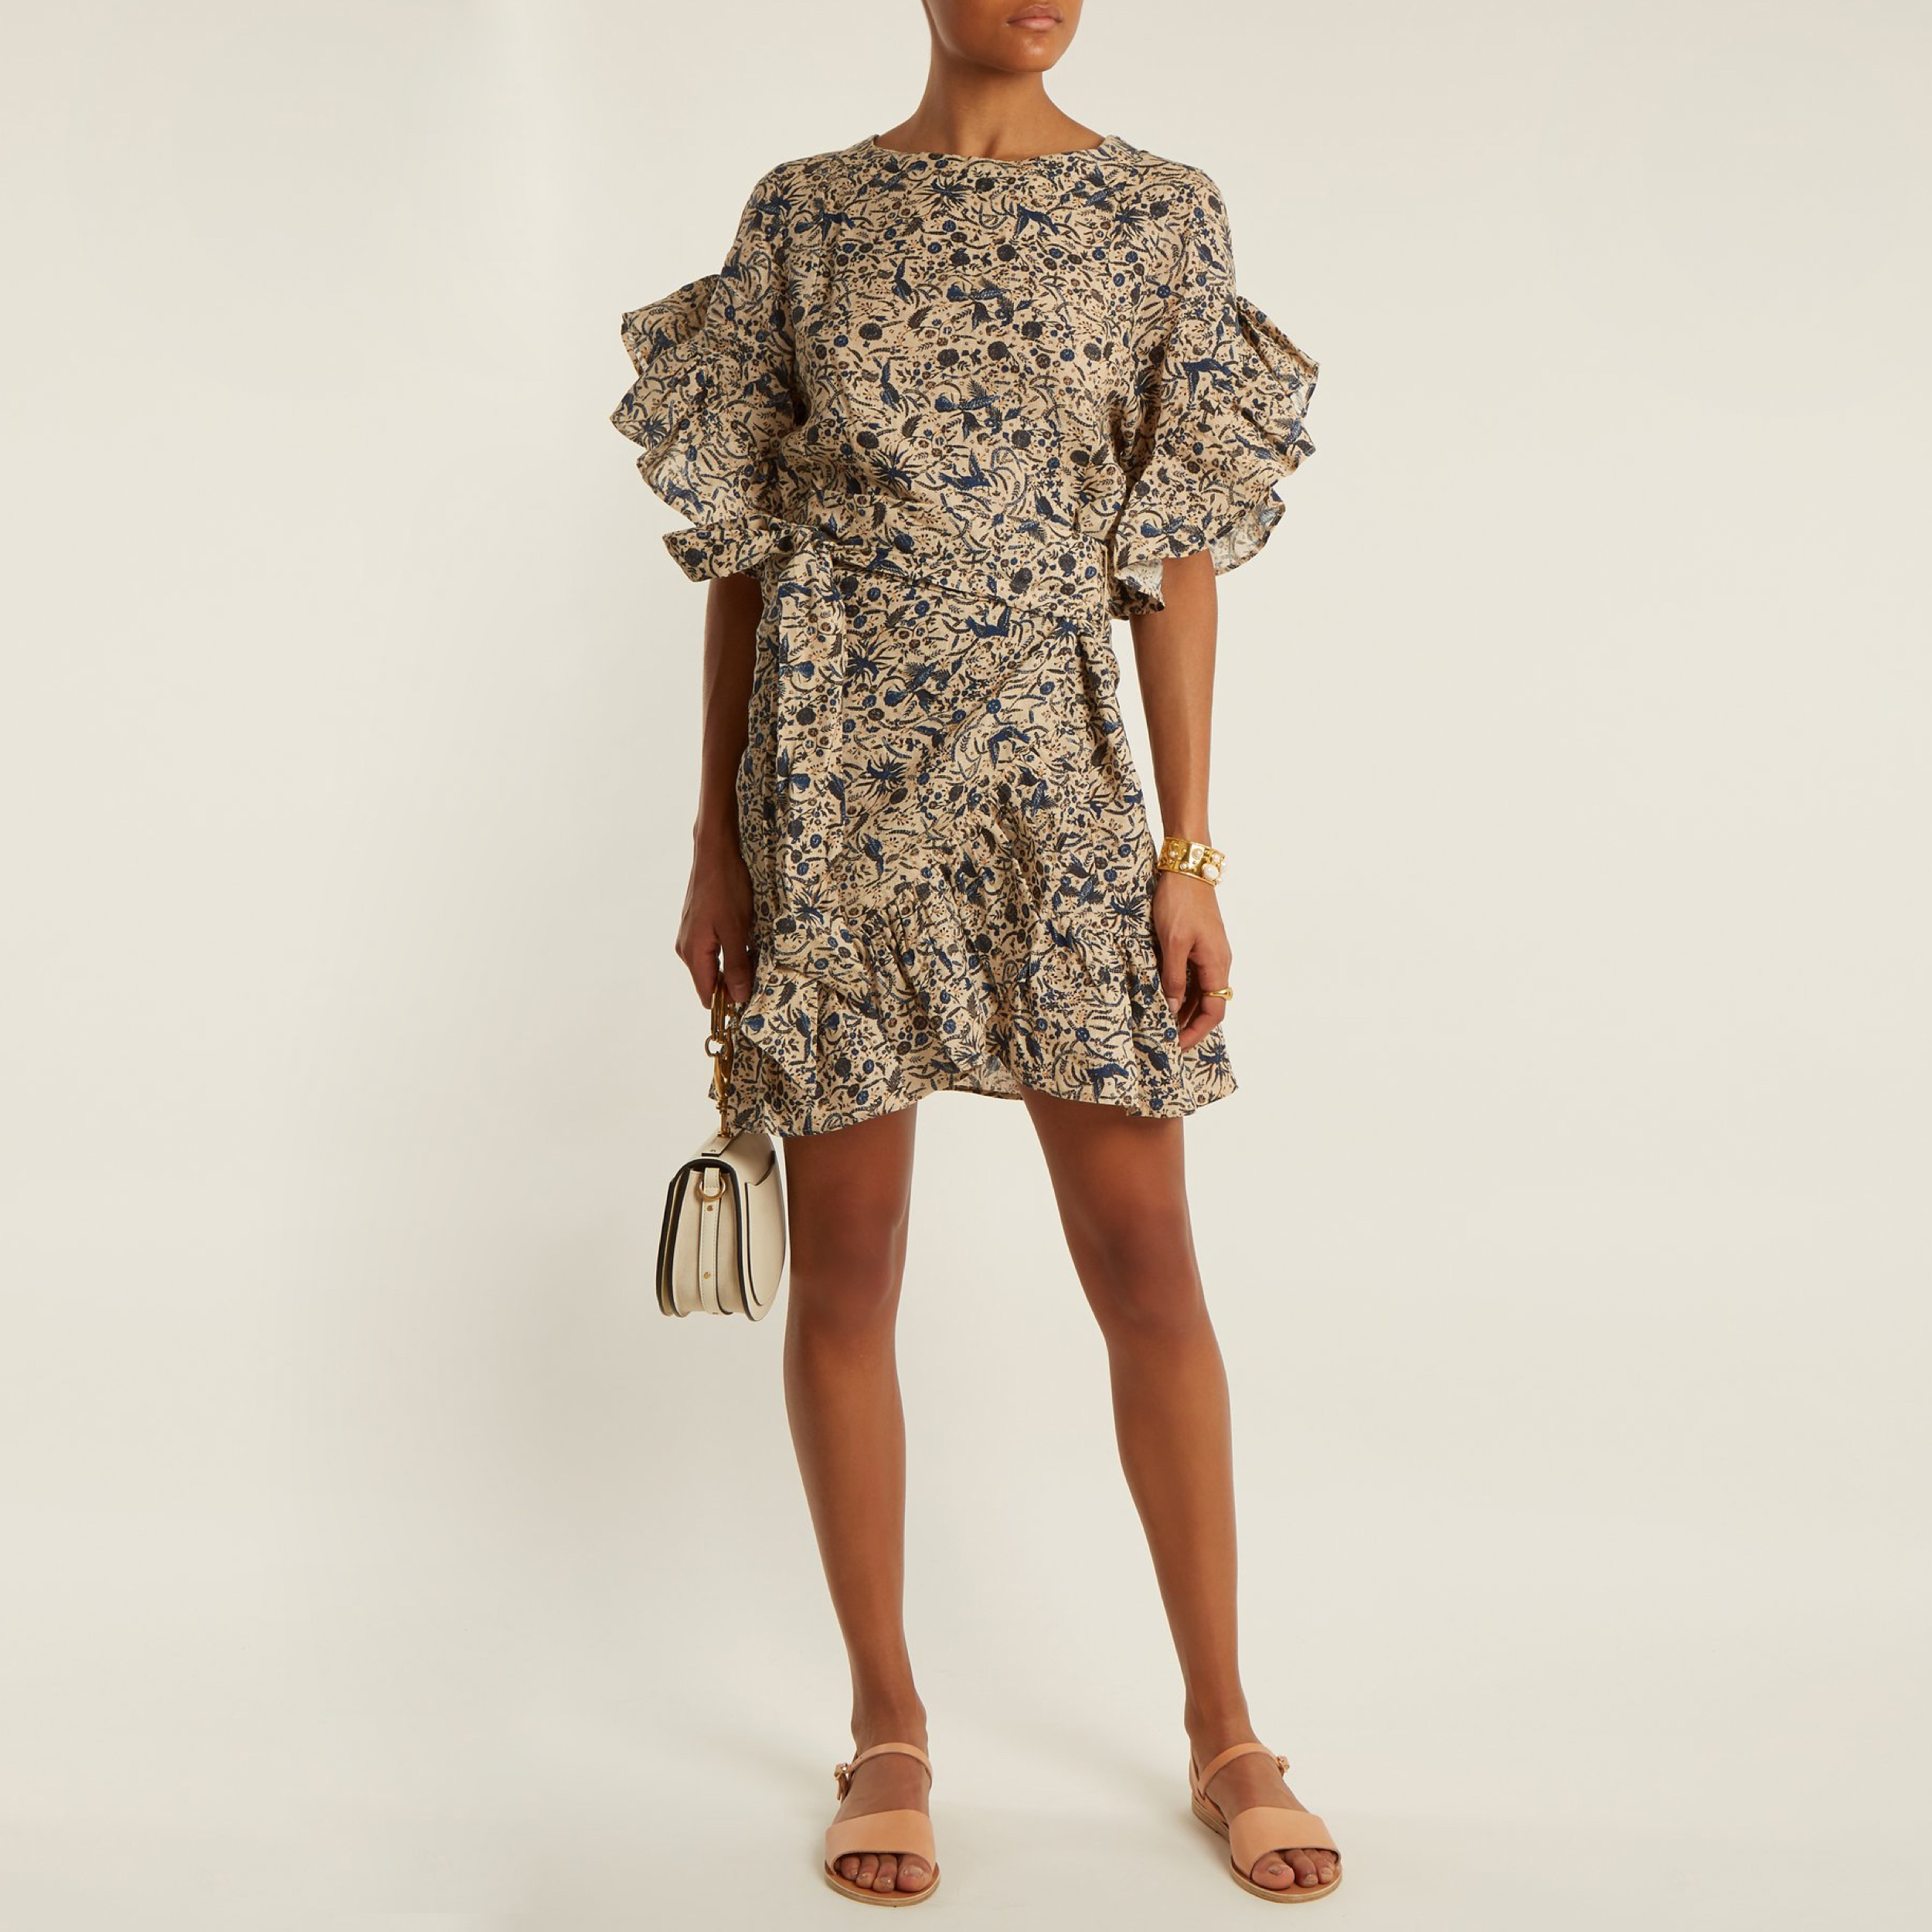 Printed Ruffle Dress